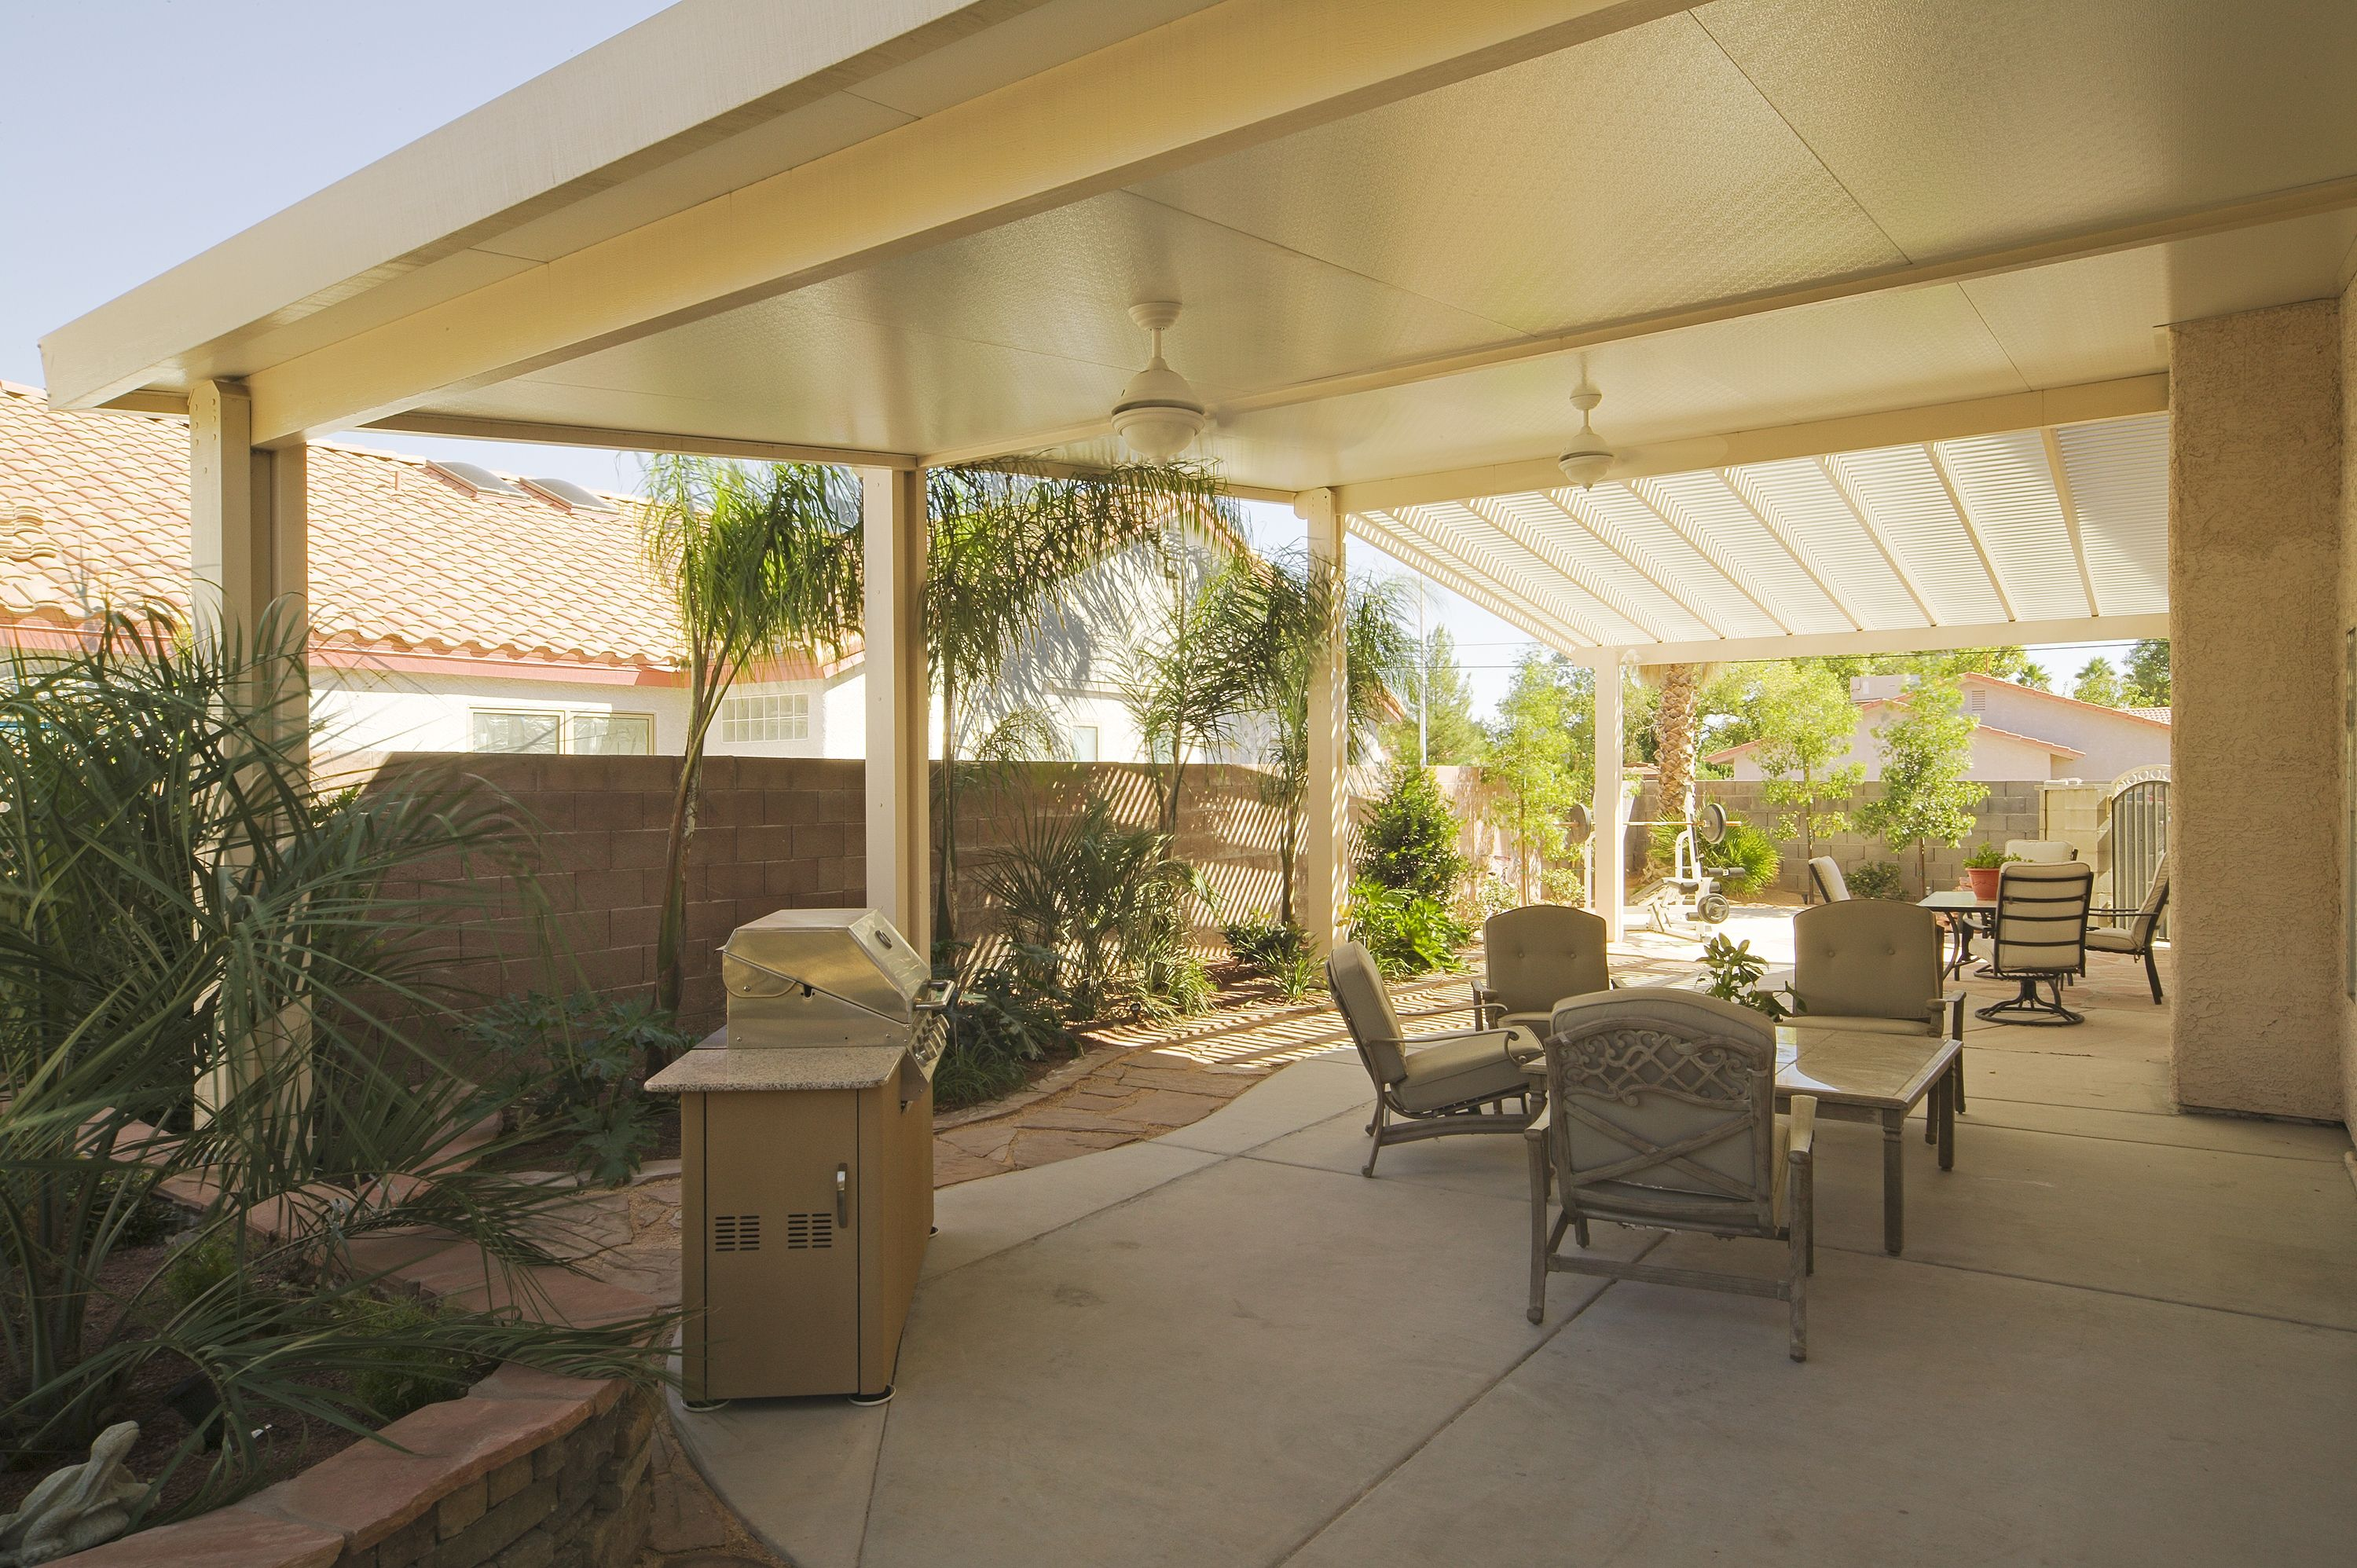 Covered Patio With Aluminum Cover